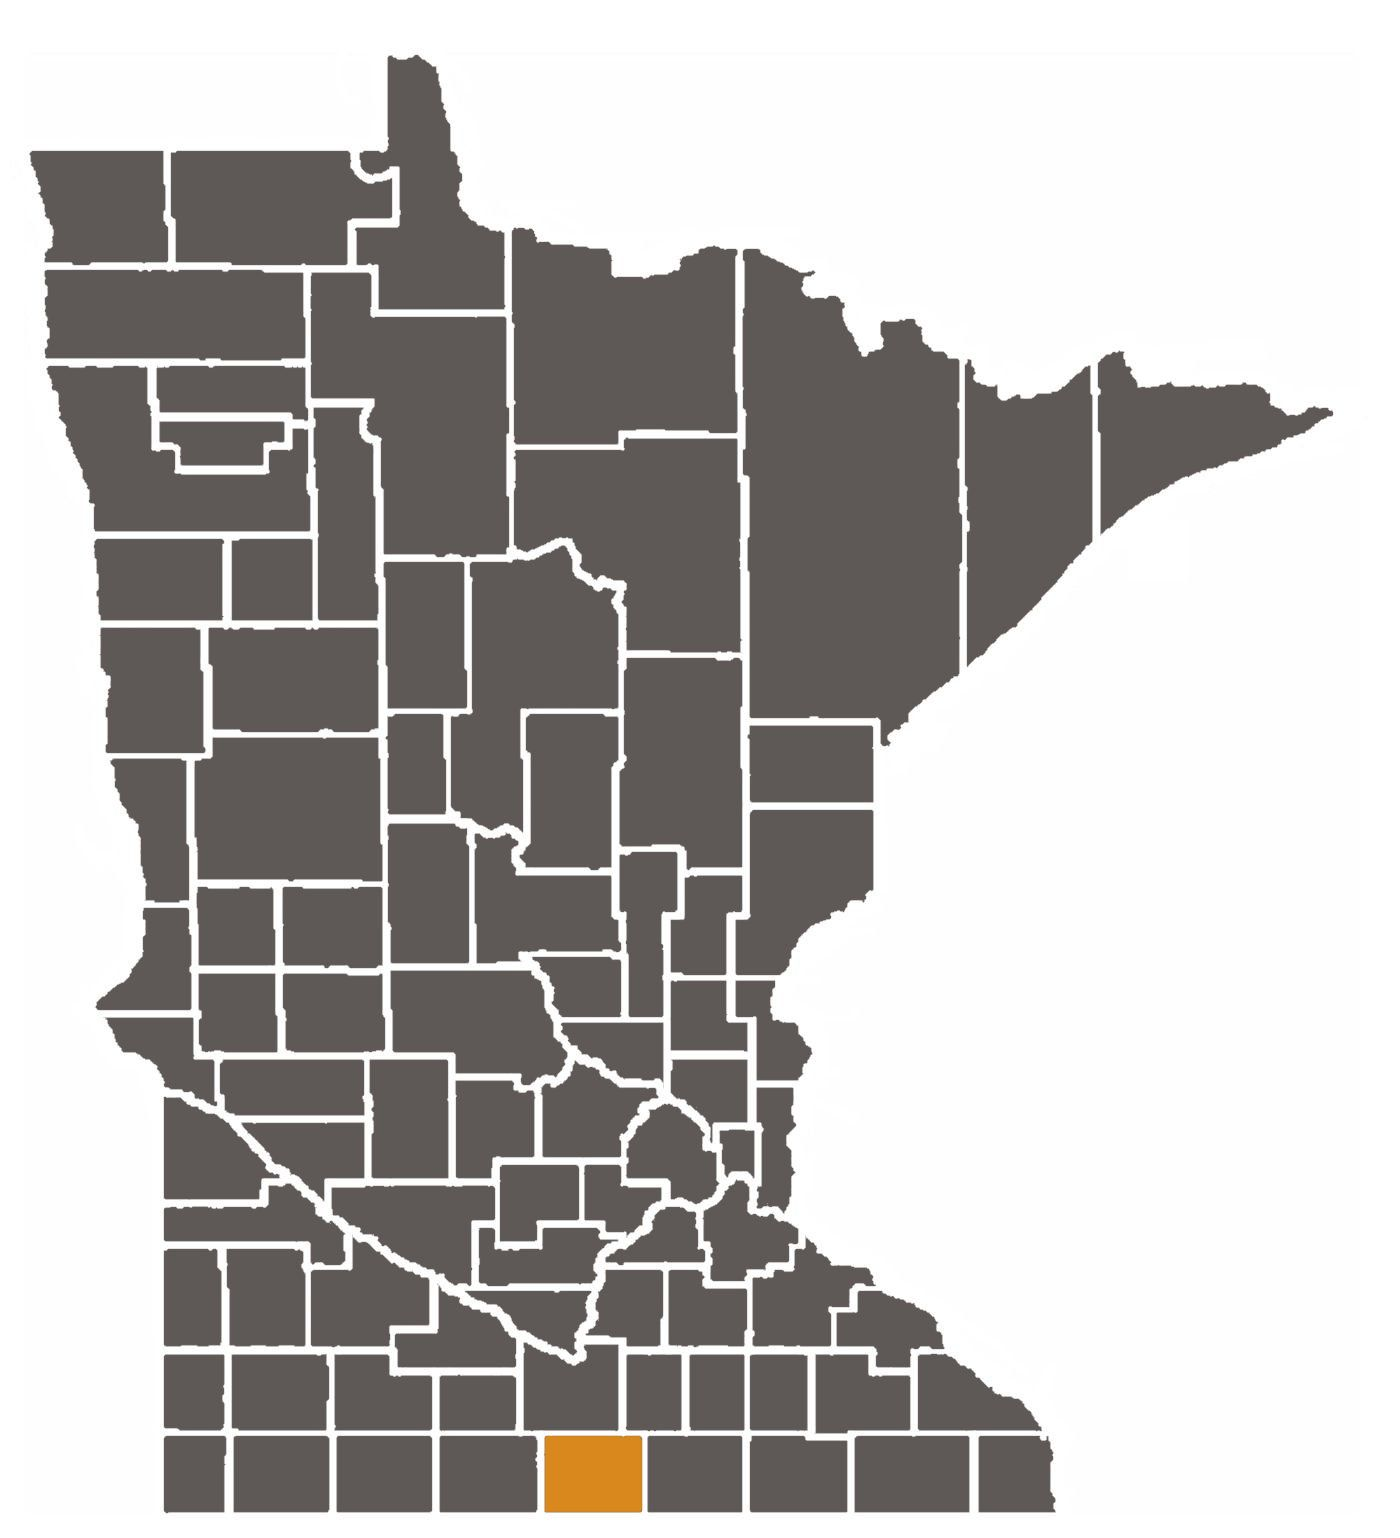 Minnesota map with Faribault County highlighted.